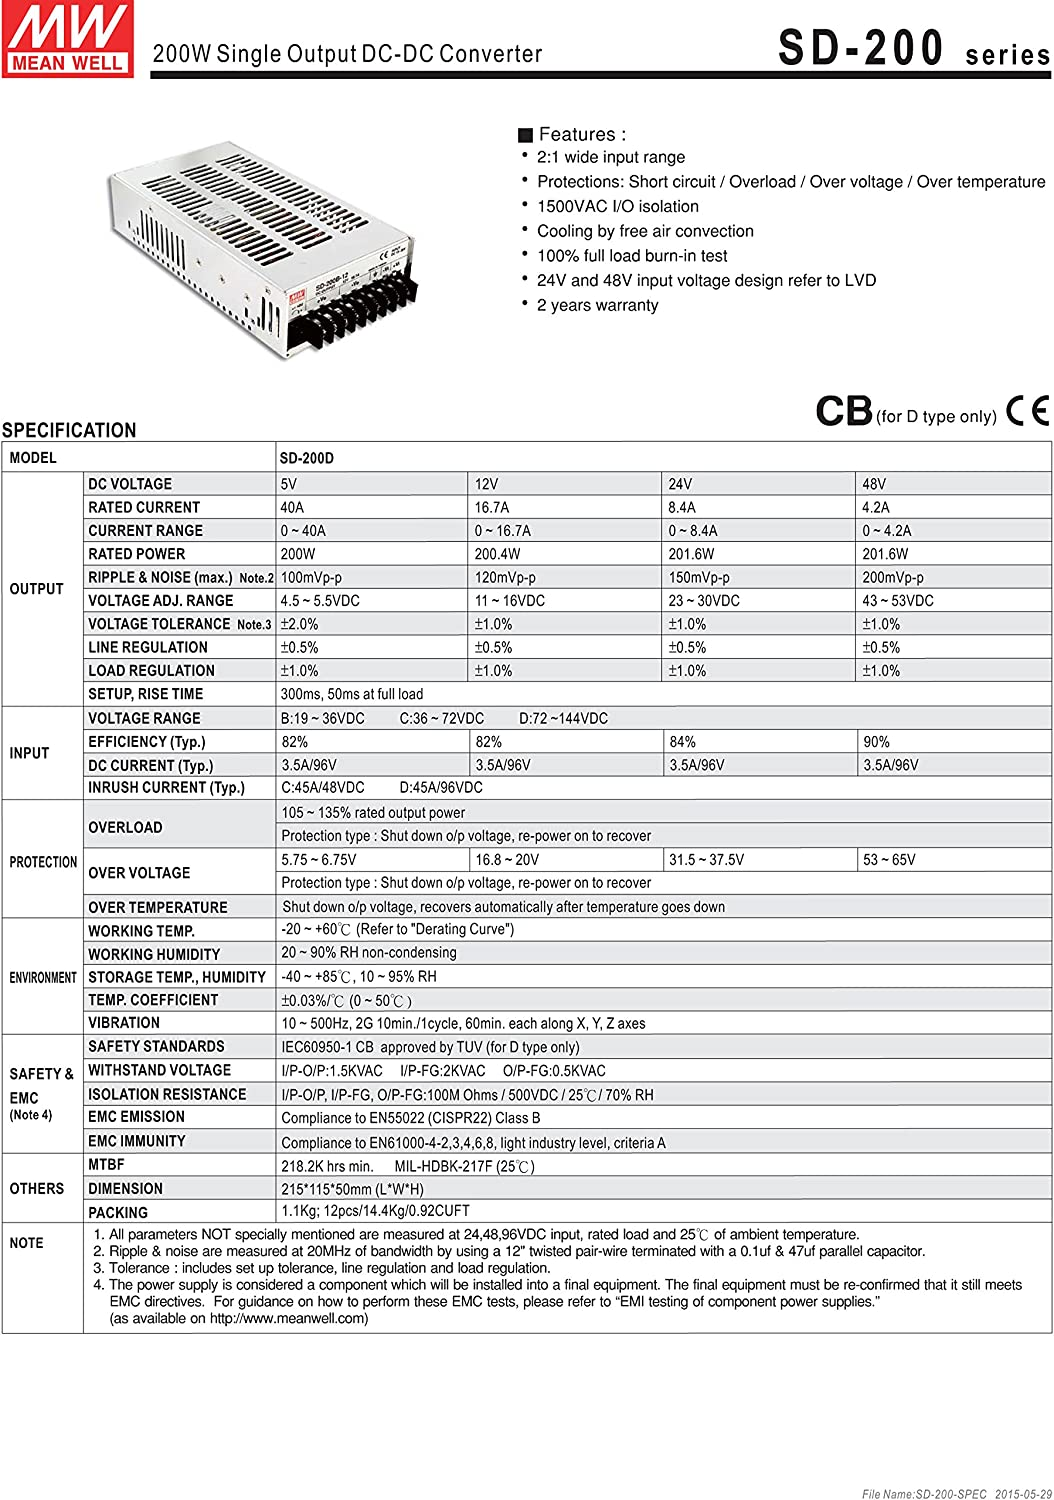 MW Mean Well SD-200C-5 5V 34A Enclosed Single Output DC-DC Converter